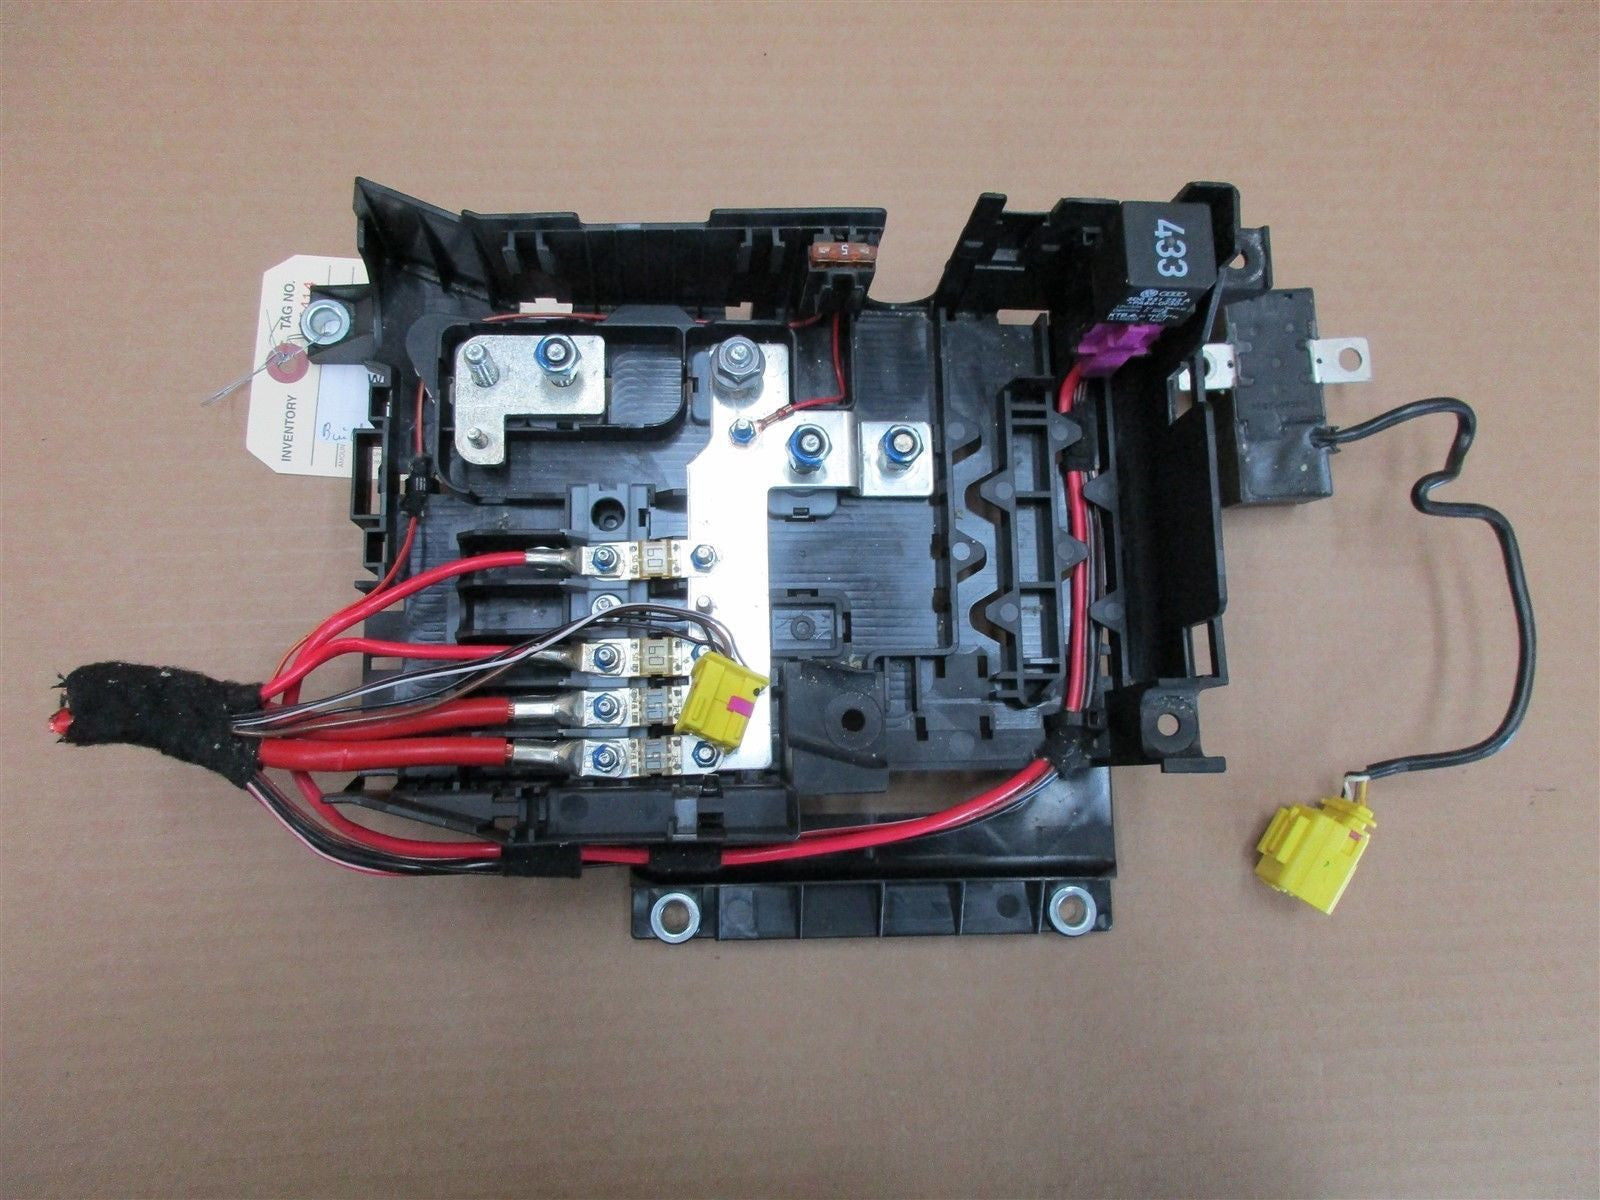 57_8425f796 88c0 456c 8893 8c14e6018e4c?v=1486658047 04 cayenne awd porsche 955 fuse box relay 7l0937548 7l0915457 04 cayenne fuse box at nearapp.co